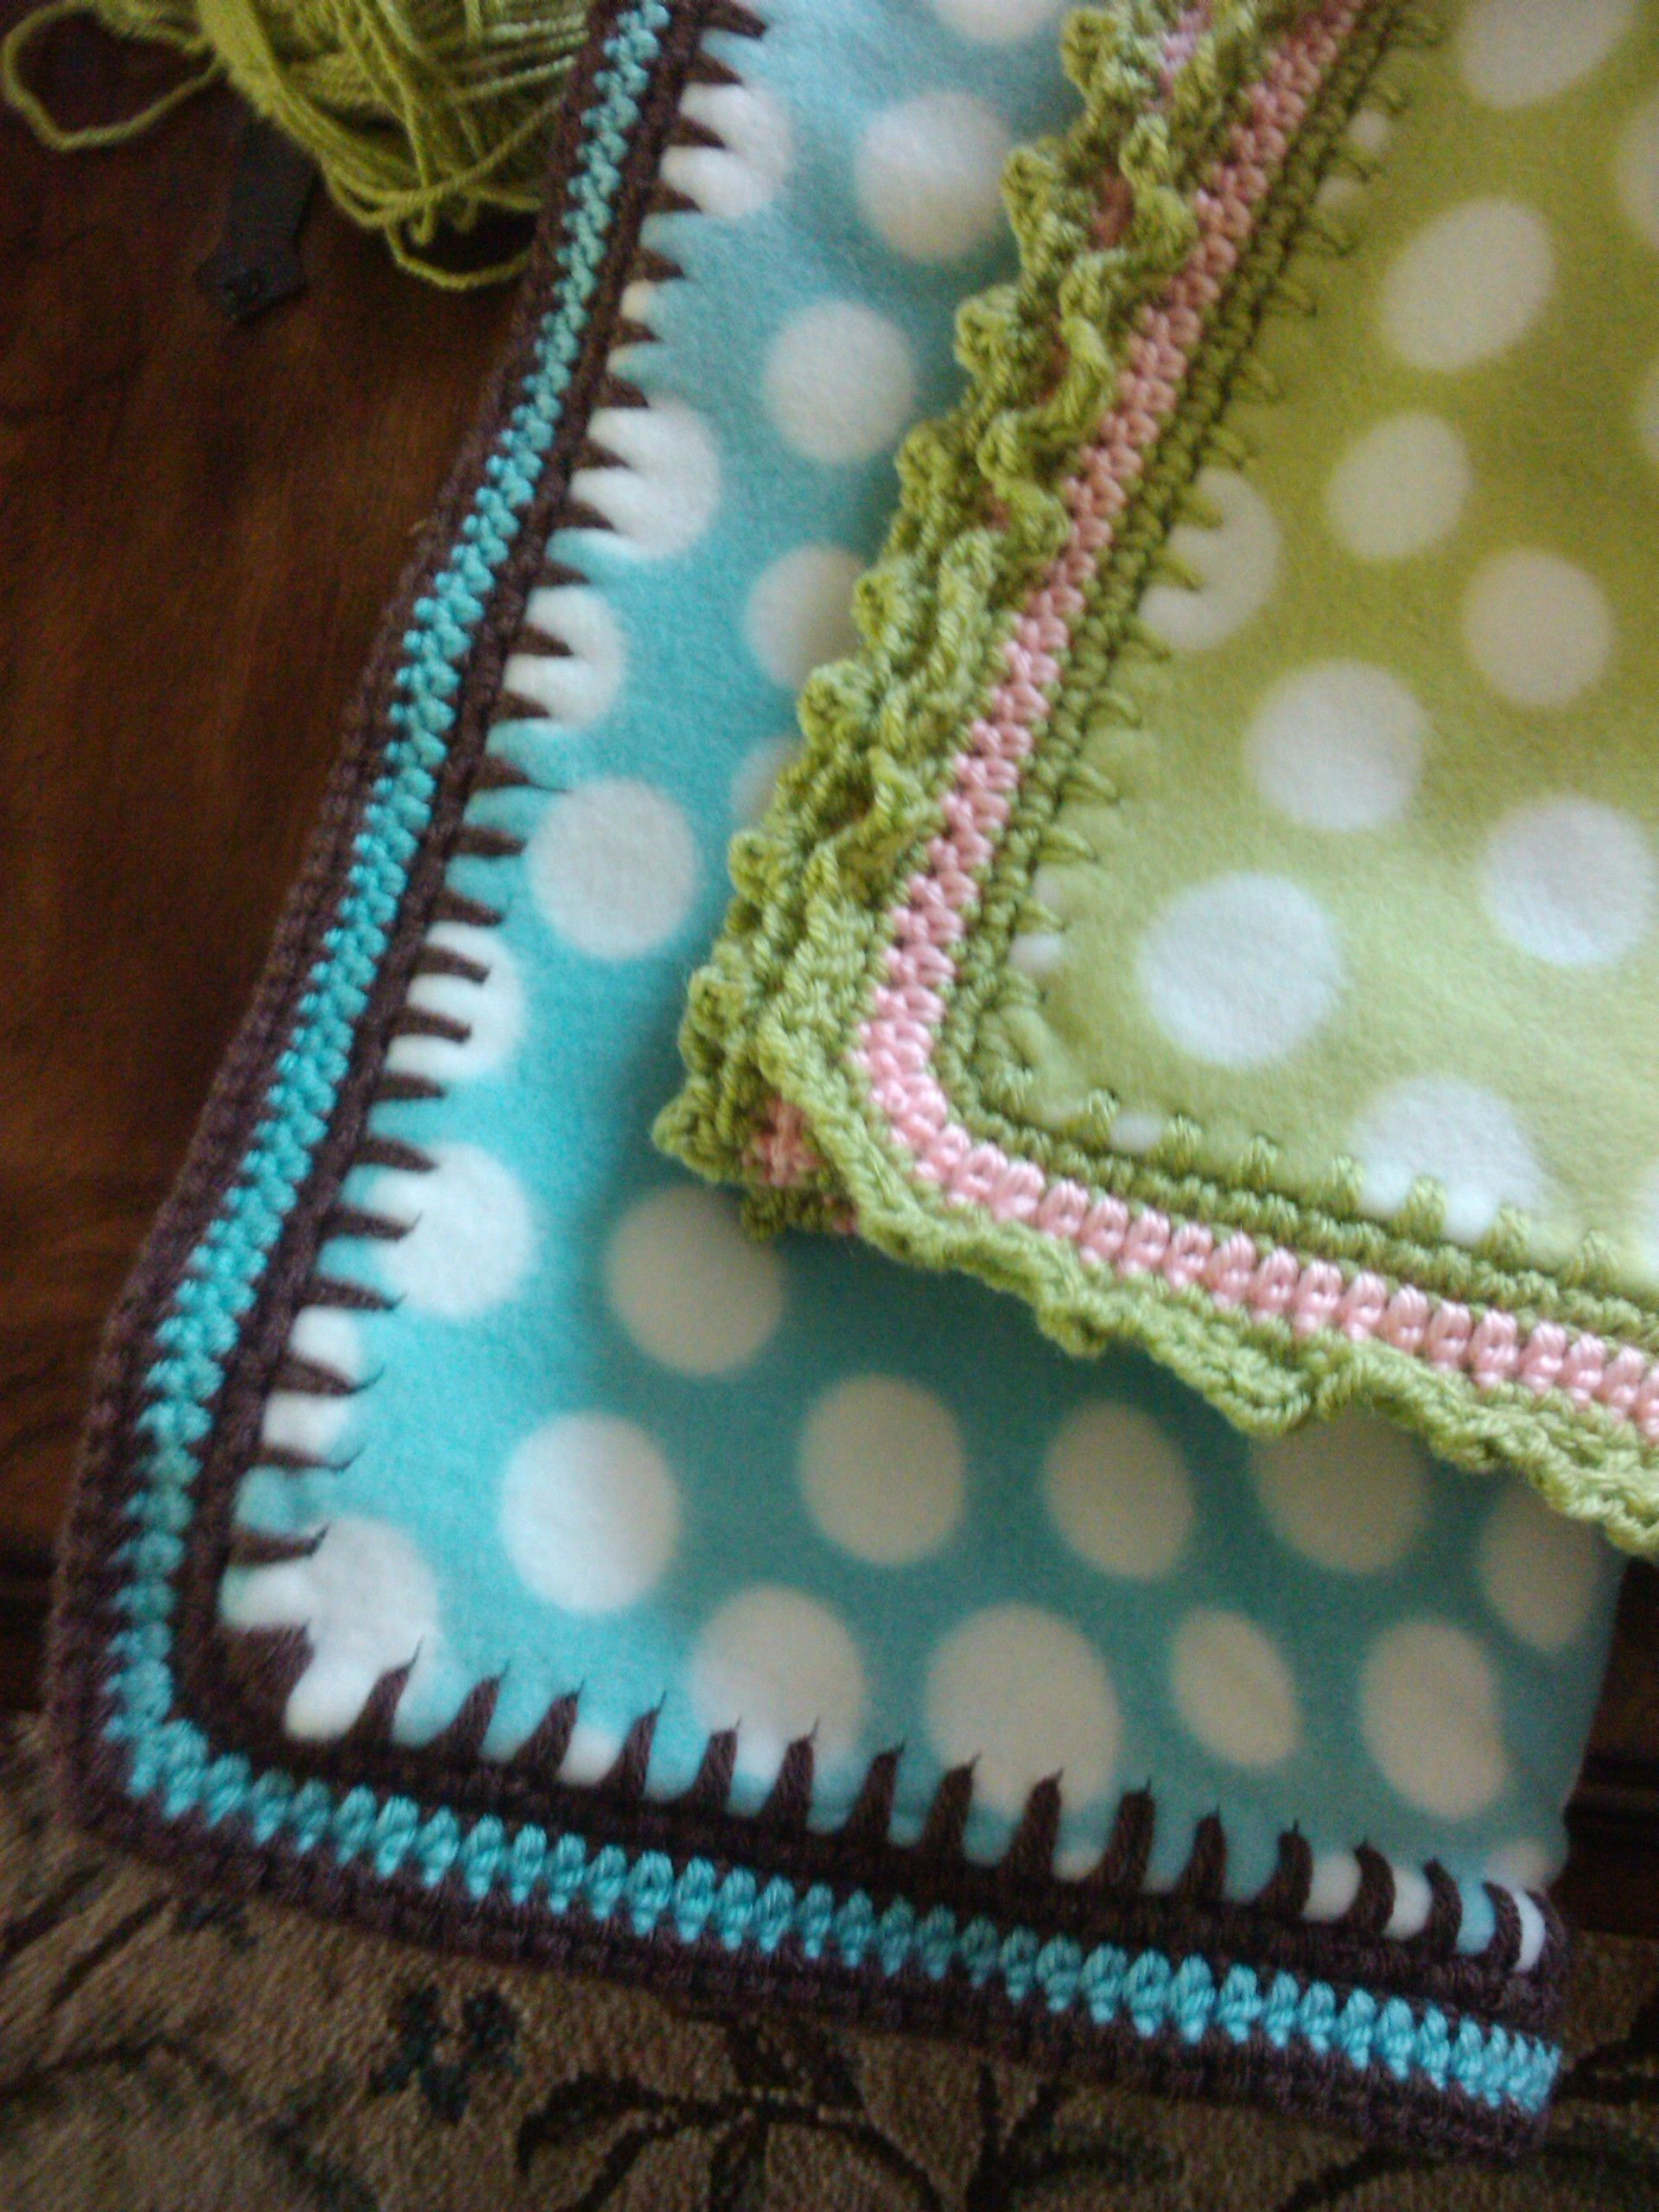 Crochet Fleece Blankets Crochet Edging Crochet Crochet Blanket